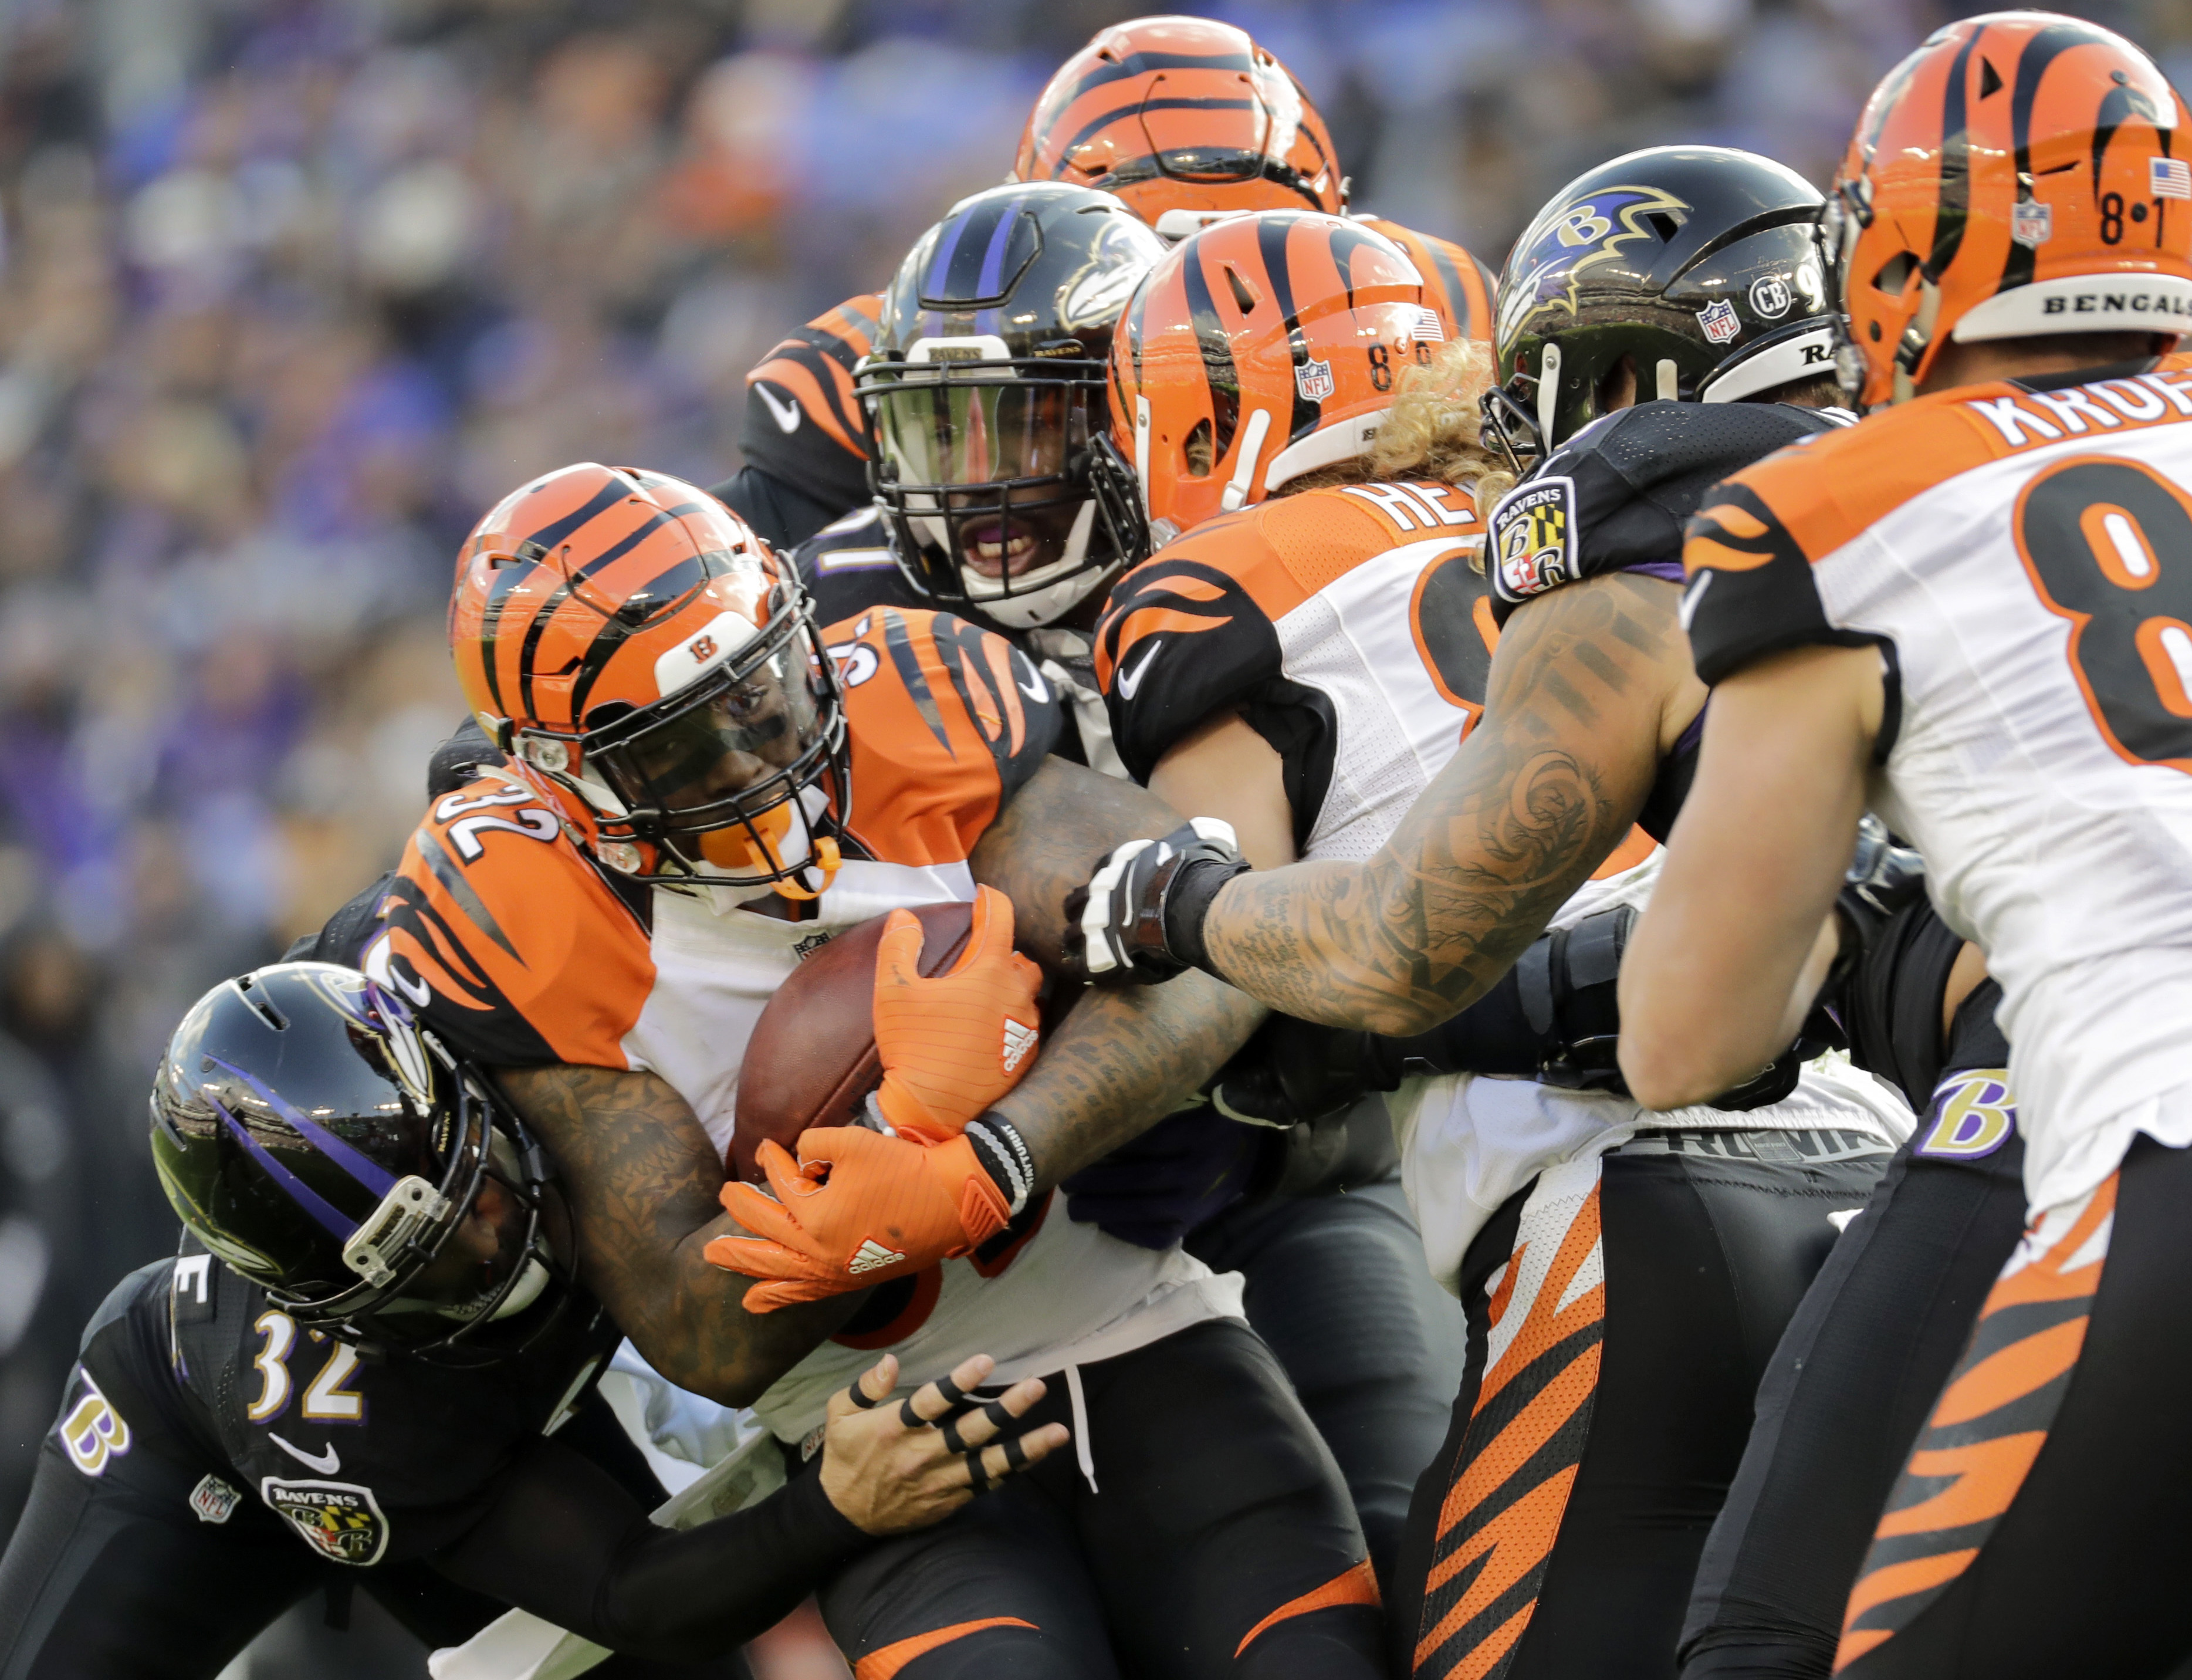 FILE - In this Sunday, Nov. 27, 2016, file photo, Cincinnati Bengals running back Jeremy Hill (32) is stopped by the Baltimore Ravens defense during the first half of an NFL football game in Baltimore.  All the Bengals running backs could manage was 50 ya